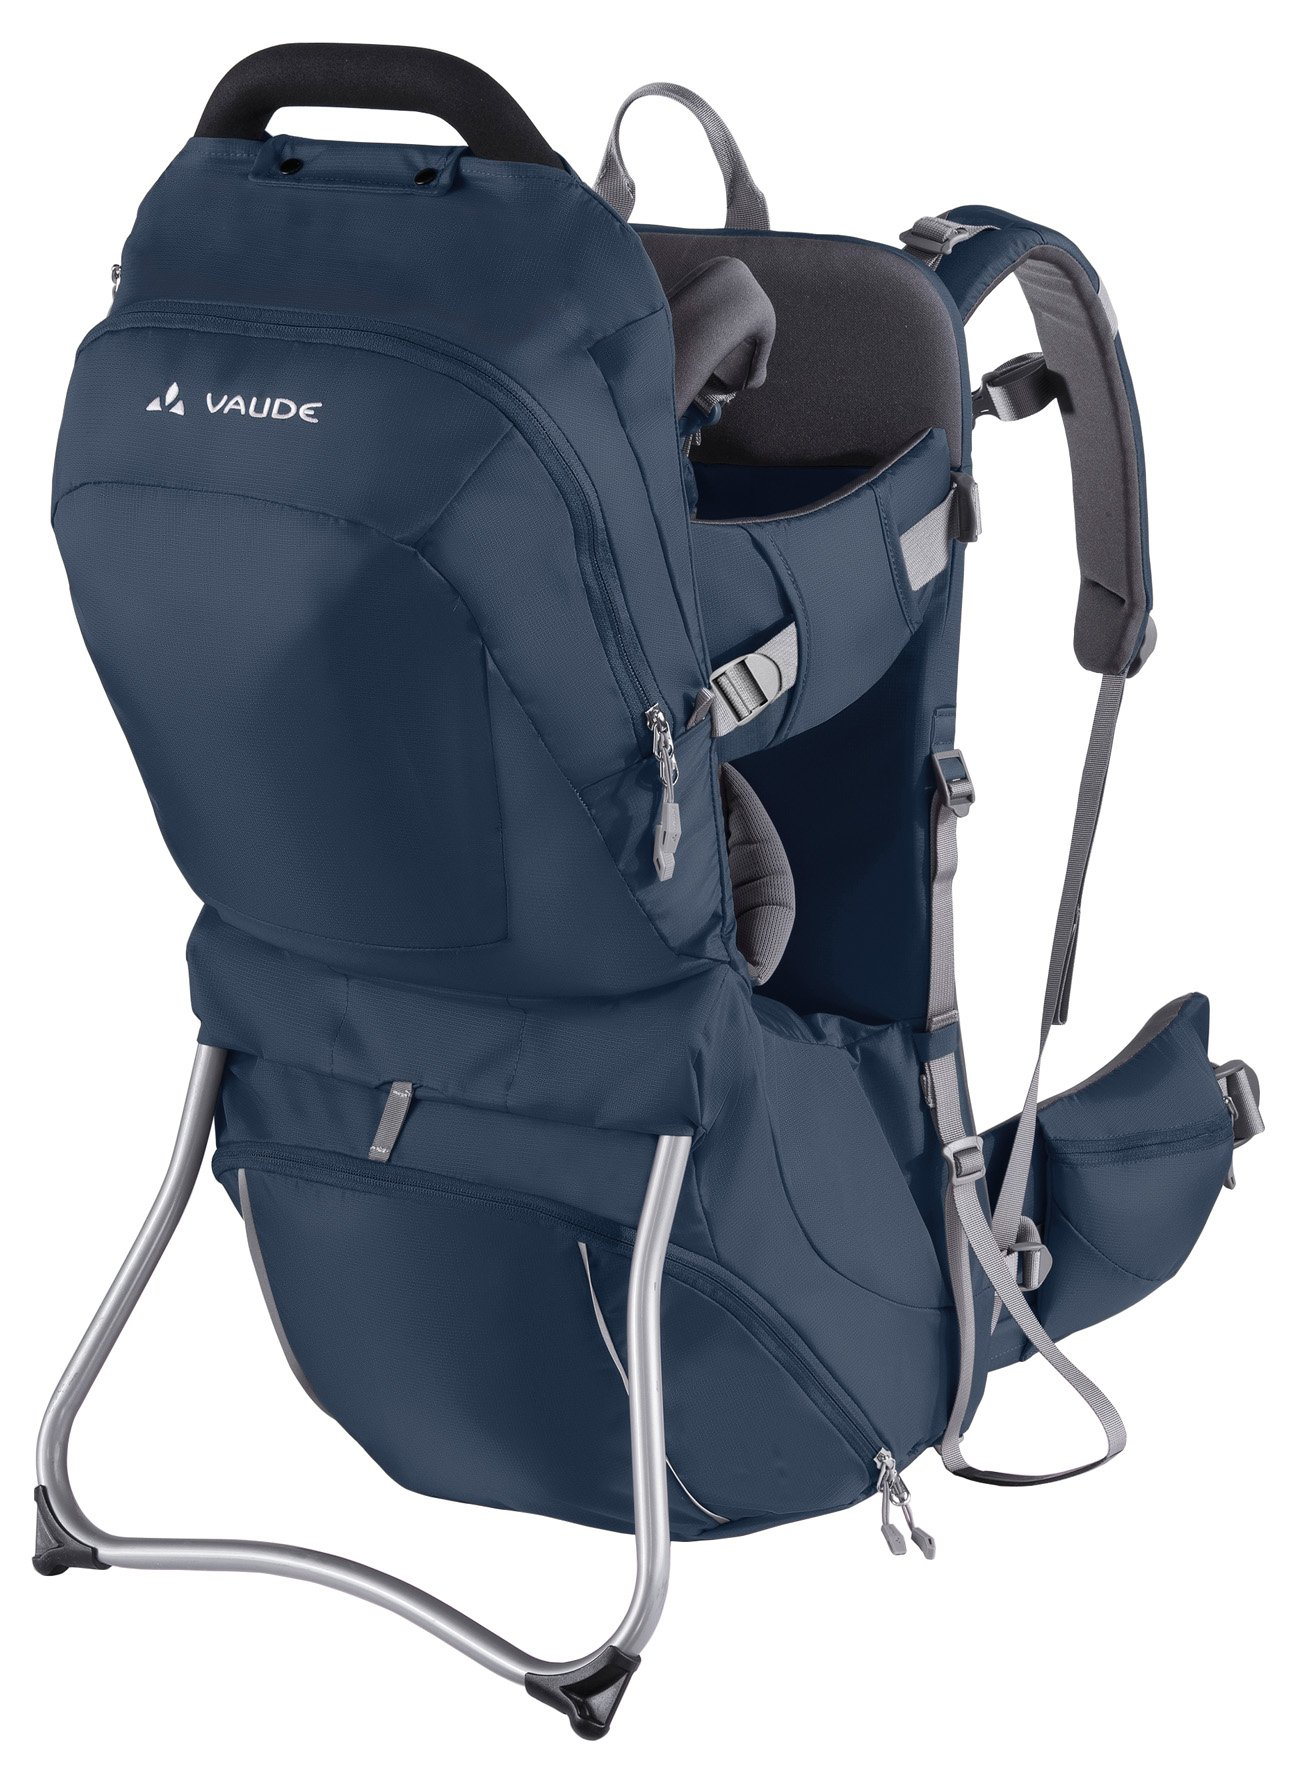 Vaude Shuttle Comfort Carrier Vaude Individually adjustable supportive back Adjustable seat height, torso support Separate bottom compartment, stowage compartment with zip 3